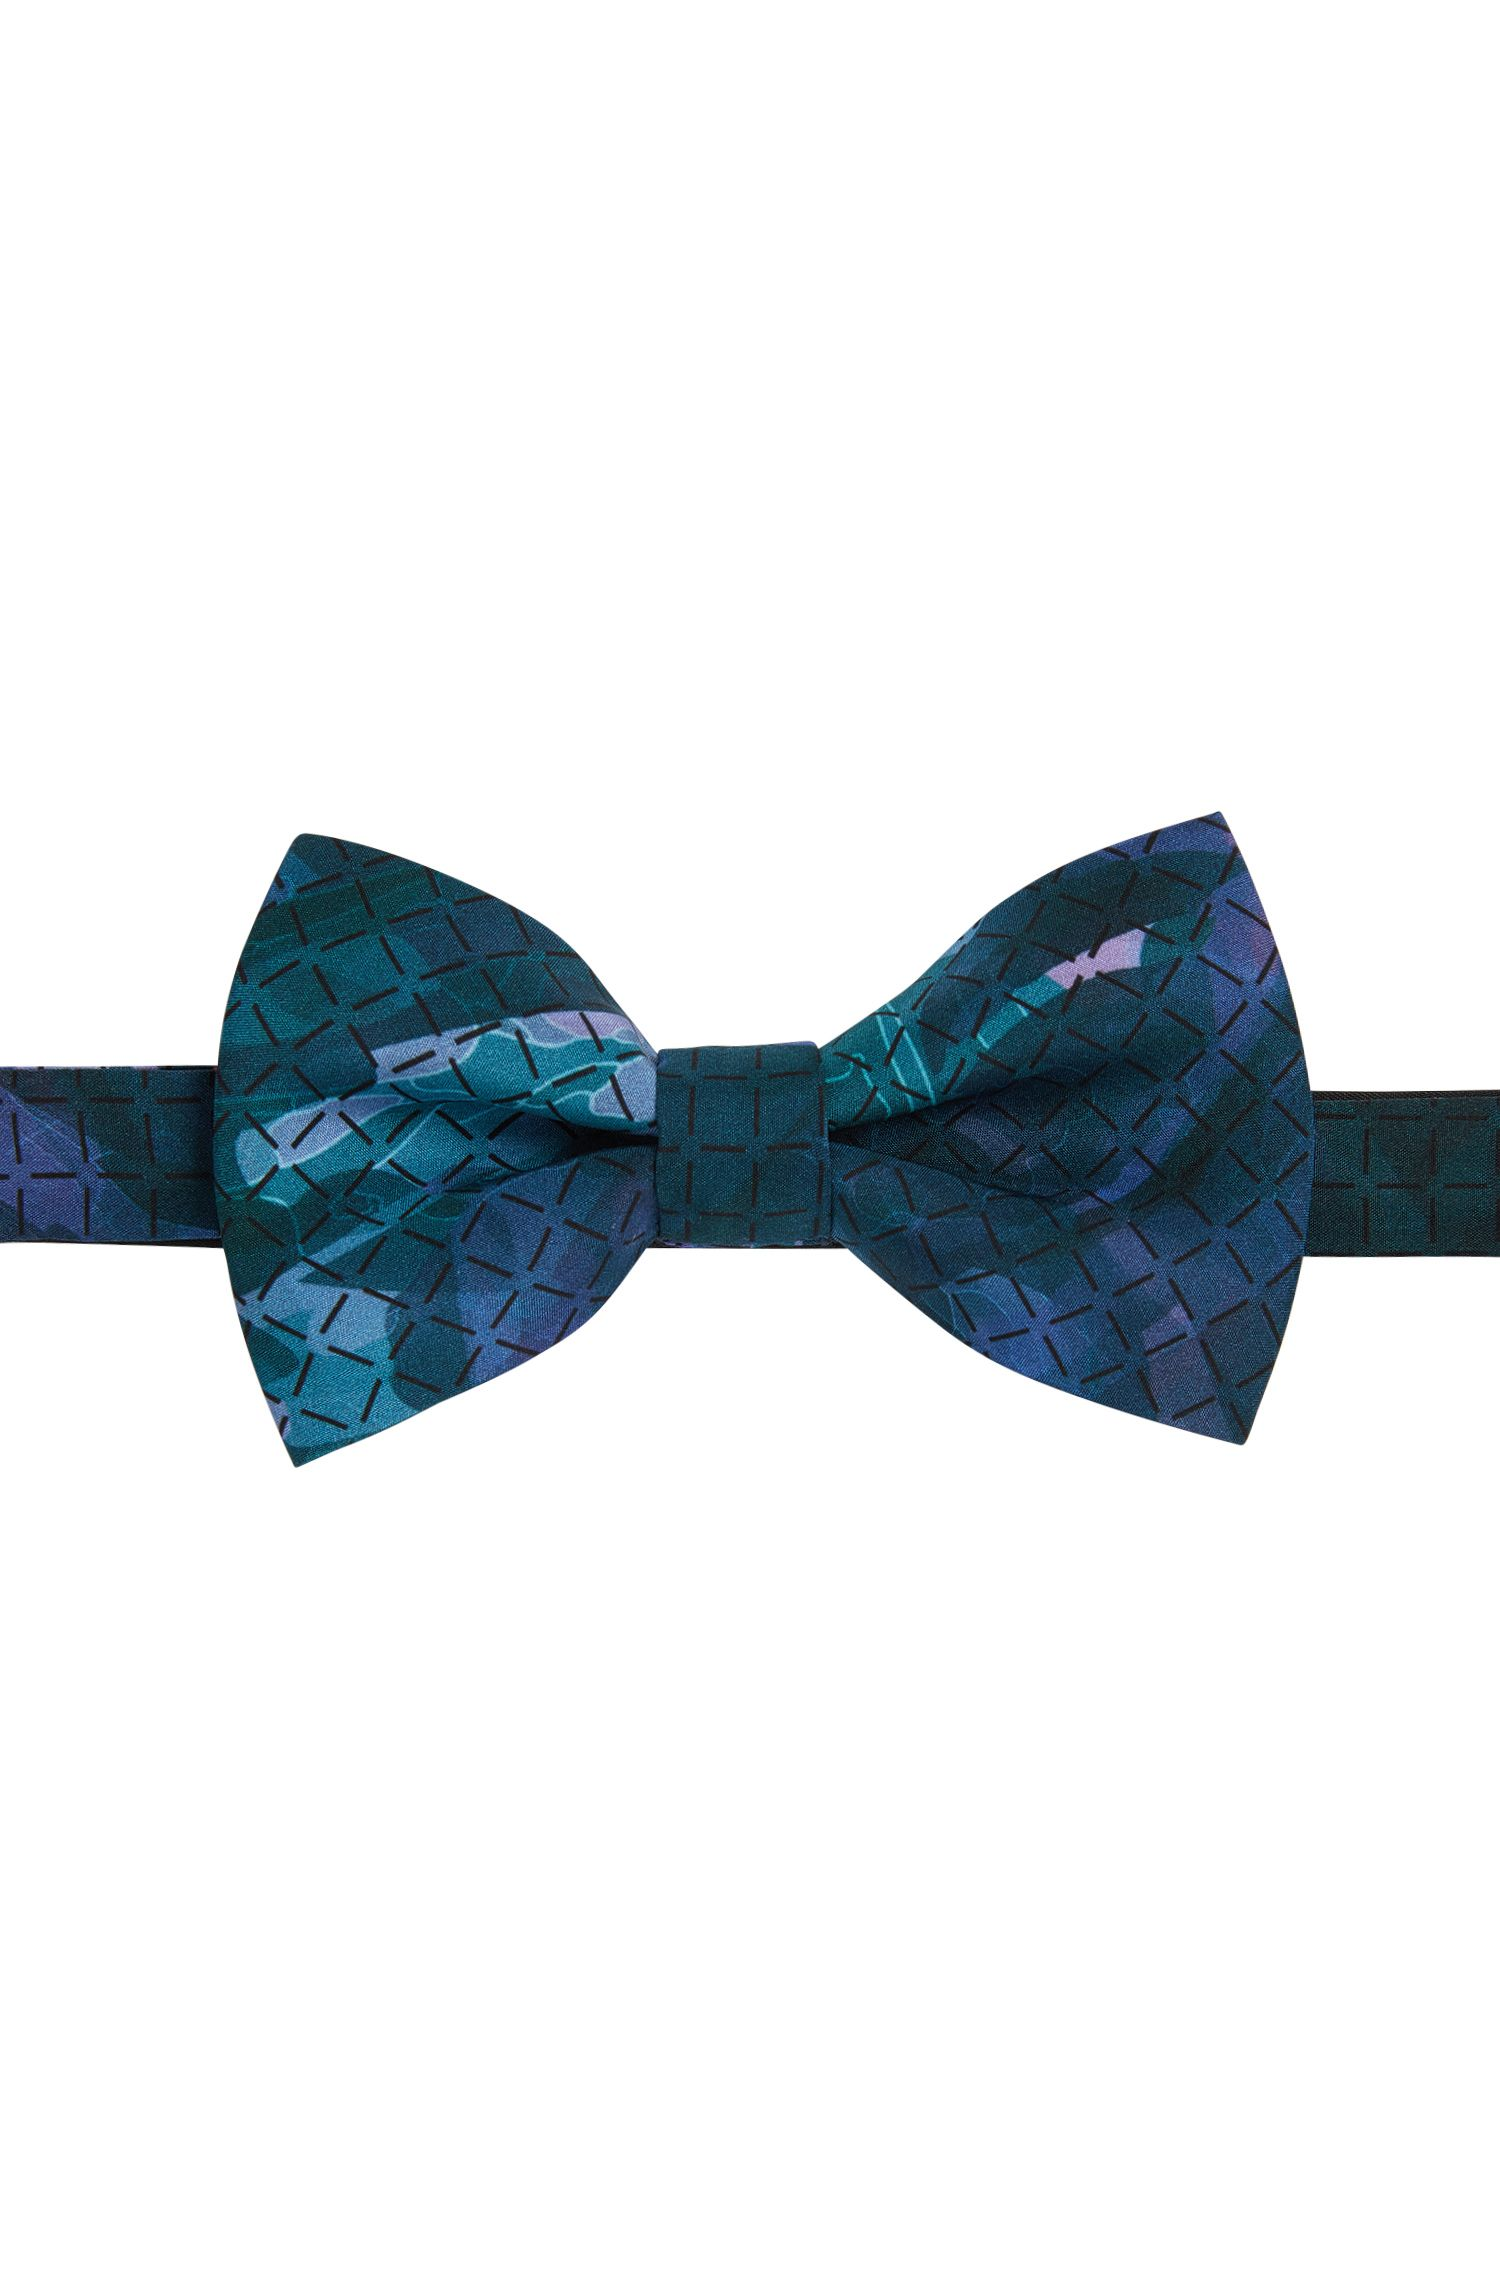 'Big Bow Tie' | Silk Floral Patterned Bow Tie